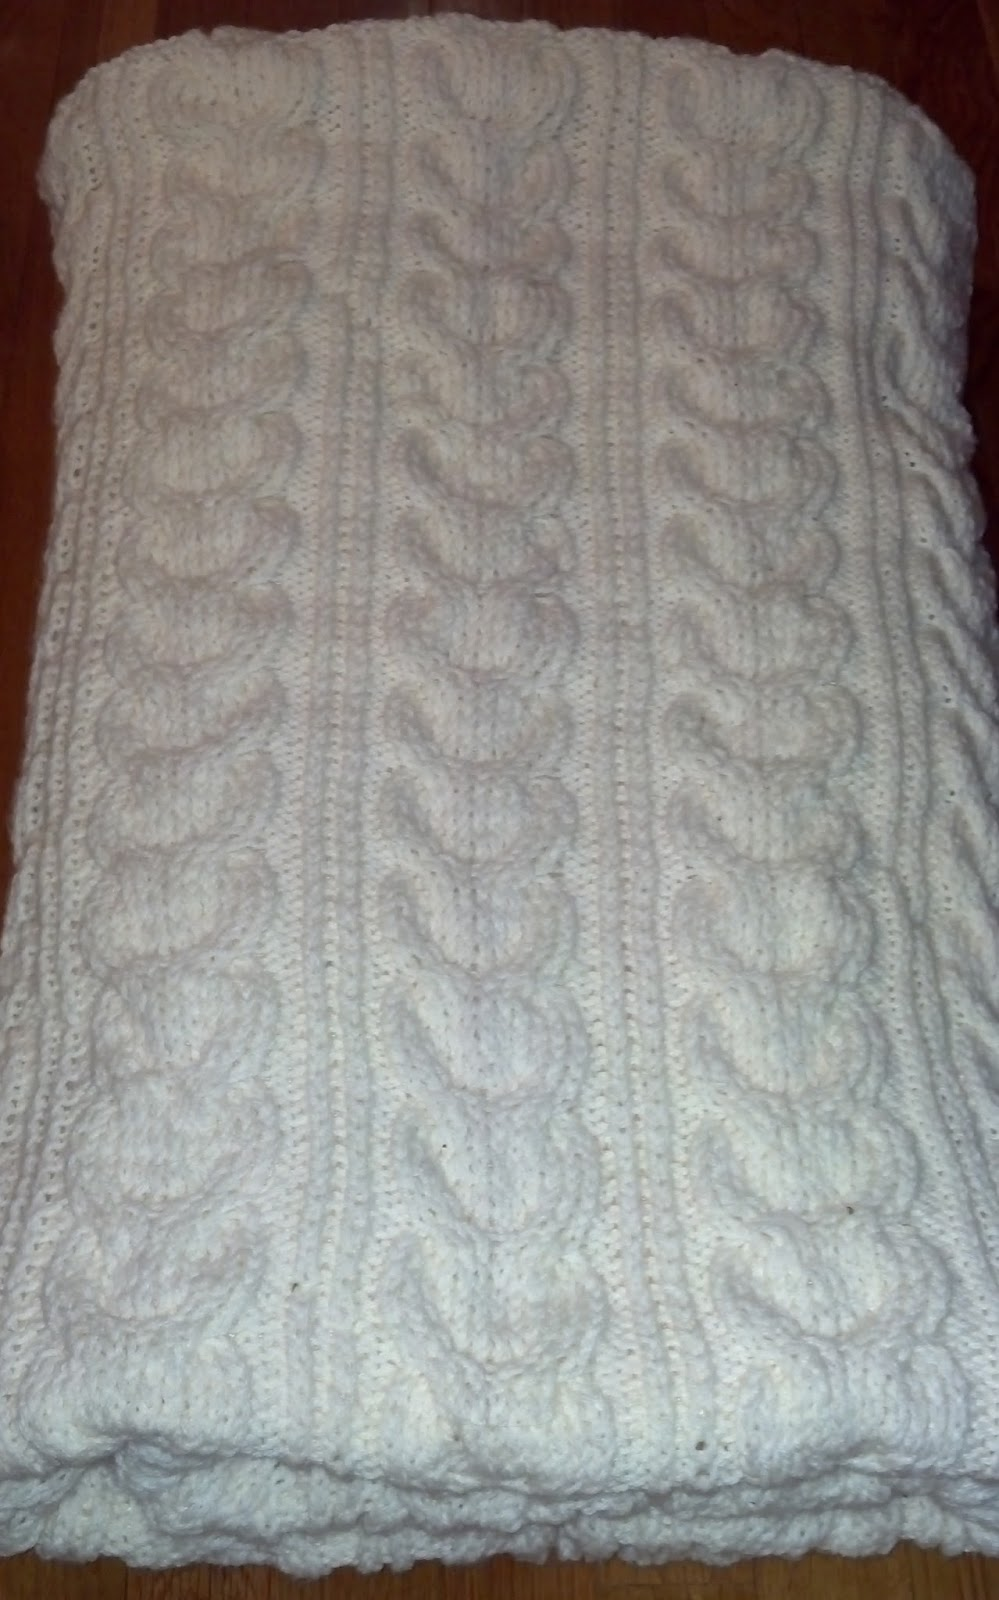 Knitting Pattern For Pottery Barn Throw : Pattern: Pottery Barn Cable Knit Throw Knit A Bit Crochet Away